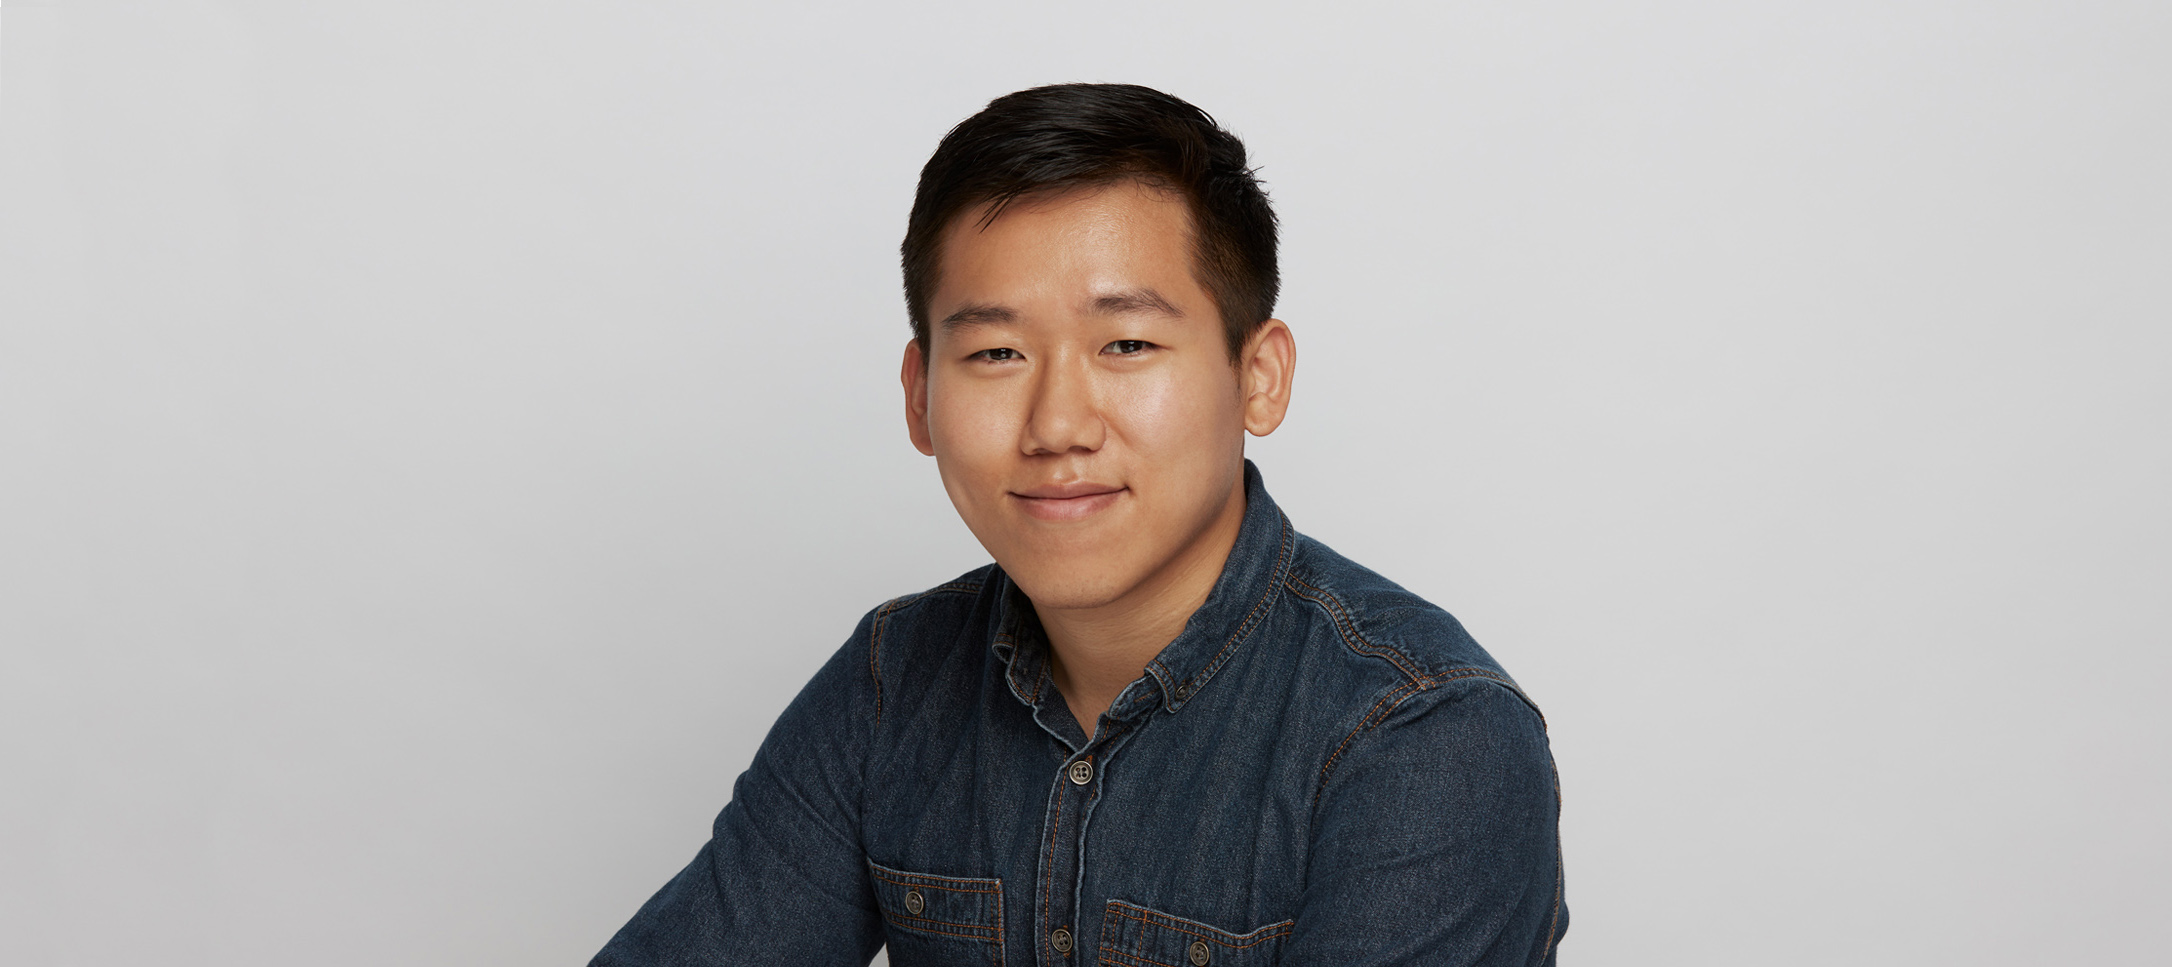 Andrew Kwok   Senior Analyst   Andrew is the Senior Analyst of Forecast Labs, focused on helping startups break into television advertising as a customer acquisition channel. With a deep background in marketing and data analytics, he identifies, guides and optimizes growth opportunities for consumer-facing companies within our portfolio. Prior to CV, Andrew was a strategist and media analyst at OMD USA agency, driving digital investment strategy for Wells Fargo marketing campaigns. He earned his B.S. from UC Berkeley's Haas School of Business.